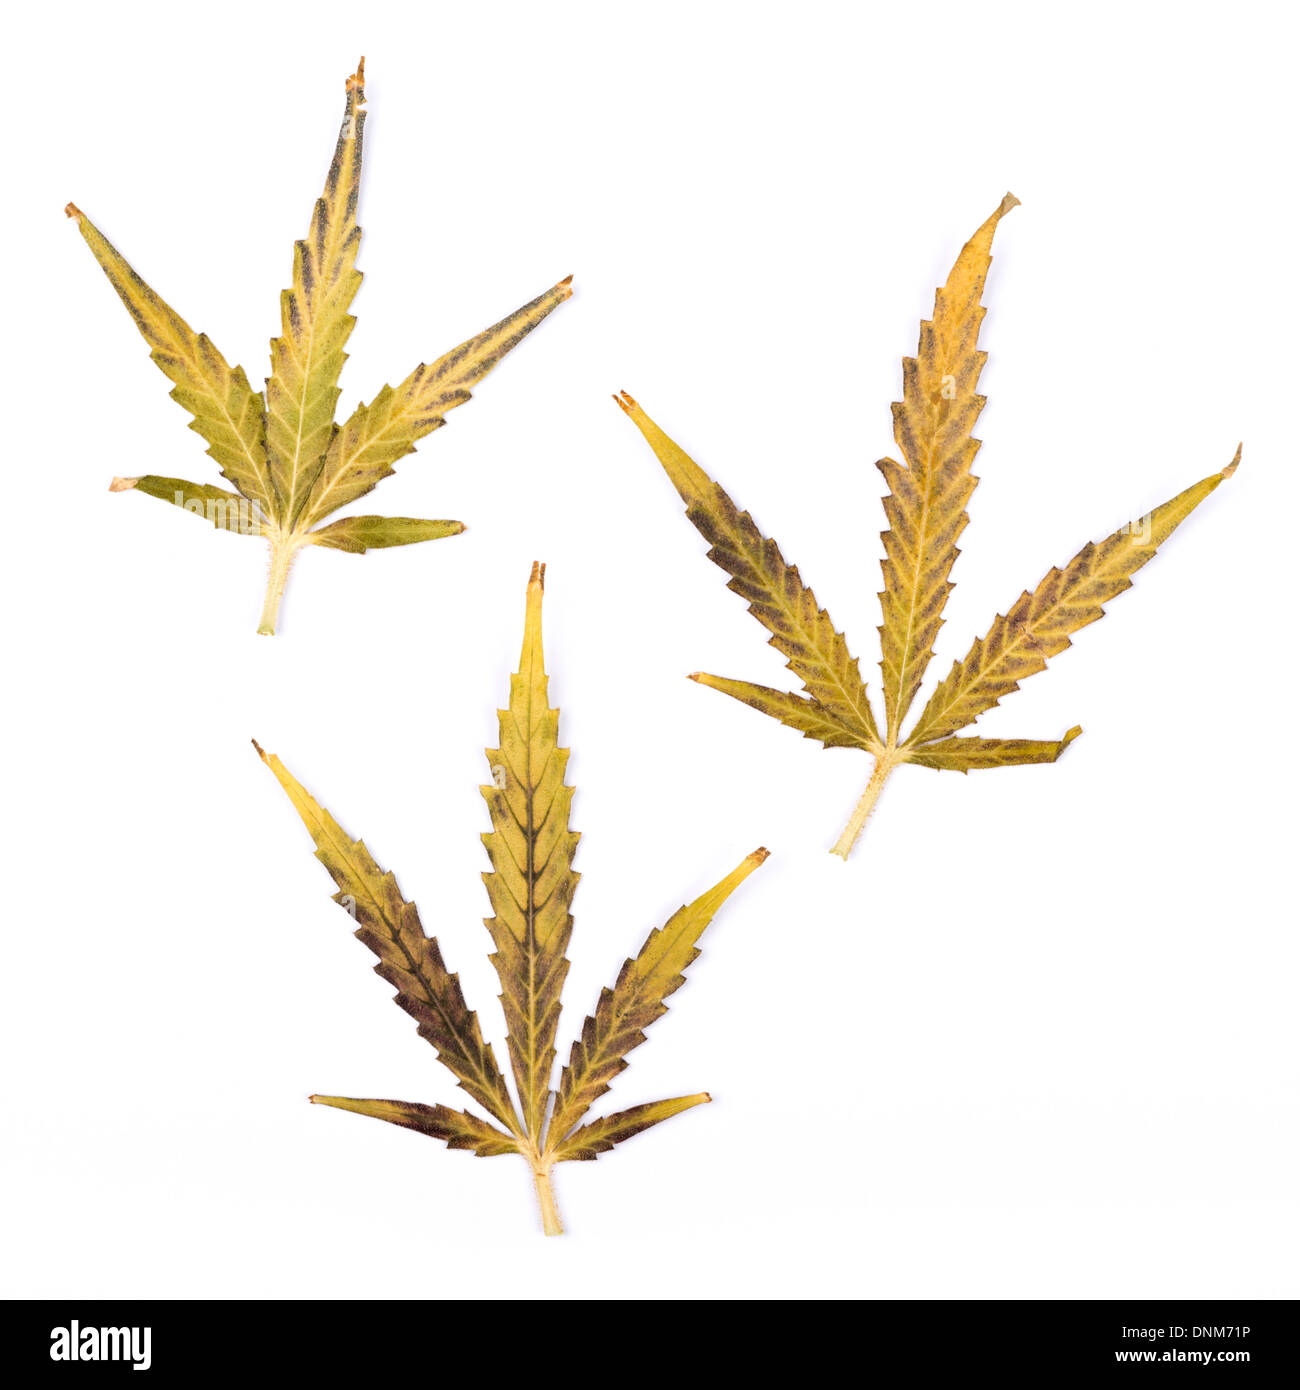 Three brightly coloured small cannabis leaves isolated on a white background. - Stock Image